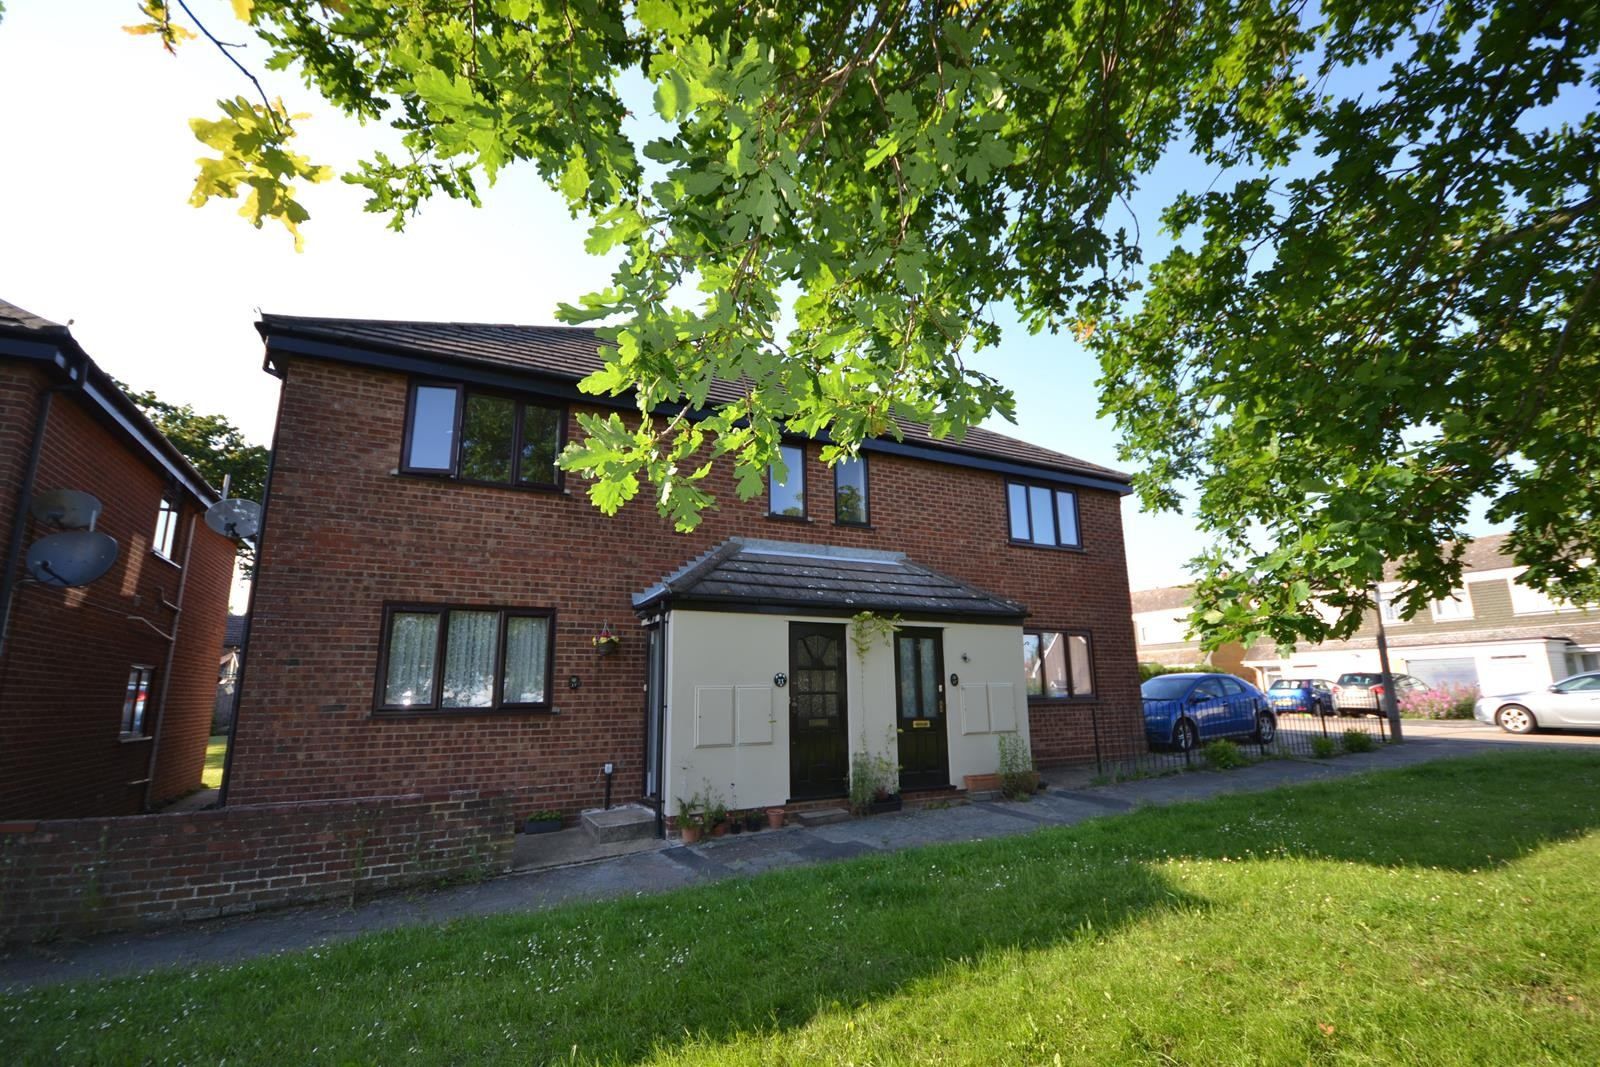 Millers Close, Great Horkesley, Colchester, Essex, CO6